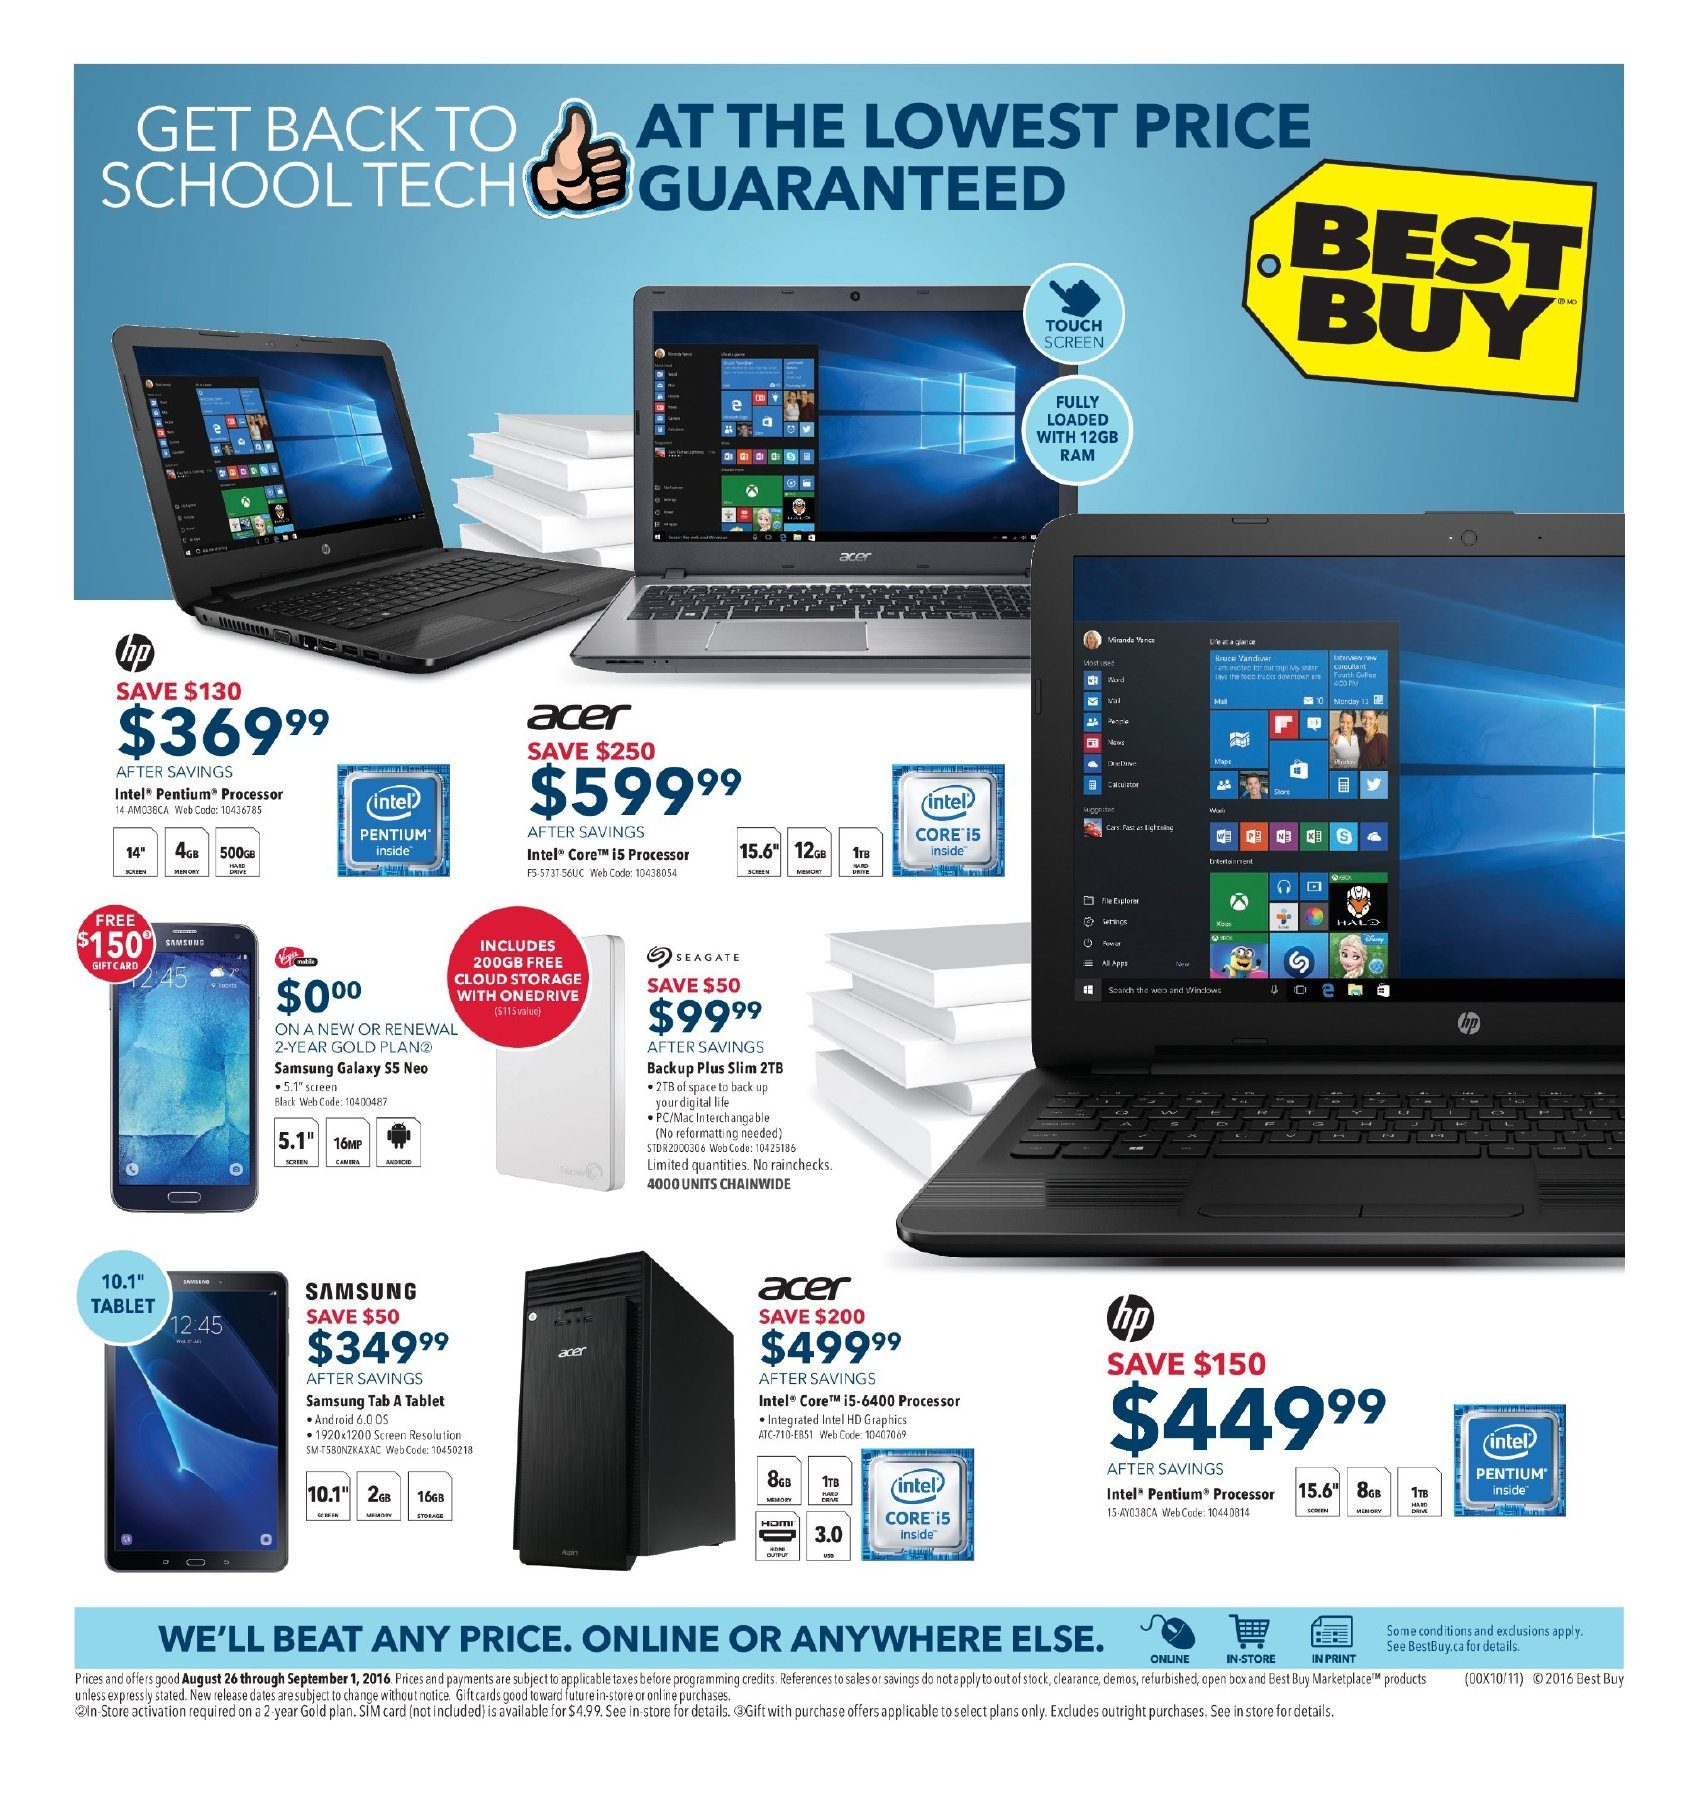 Best Buy Weekly Flyer Get Back To School Tech Aug 26 Phone Jack Wiring Question For Voip Redflagdealscom Forums Sep 1